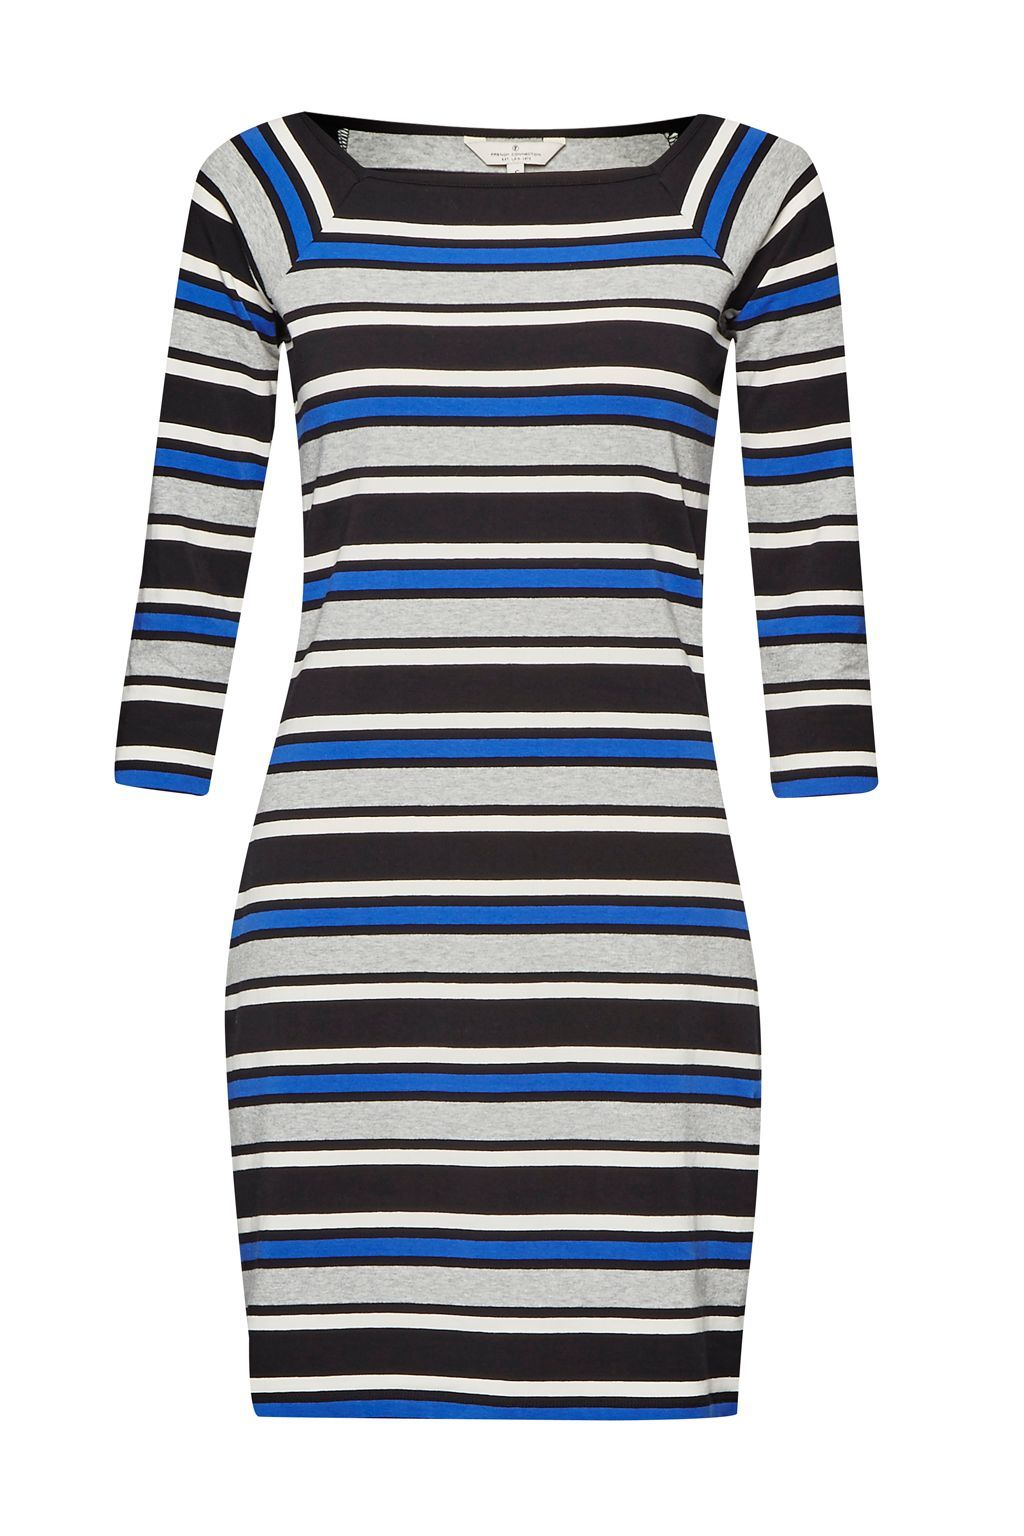 Suo Stripe Stretch Dress, Blue - length: mini; neckline: high square neck; fit: tight; pattern: horizontal stripes; style: bodycon; hip detail: draws attention to hips; predominant colour: royal blue; secondary colour: black; occasions: evening, creative work; fibres: cotton - stretch; sleeve length: 3/4 length; sleeve style: standard; texture group: jersey - clingy; pattern type: fabric; pattern size: standard; multicoloured: multicoloured; season: a/w 2015; wardrobe: highlight